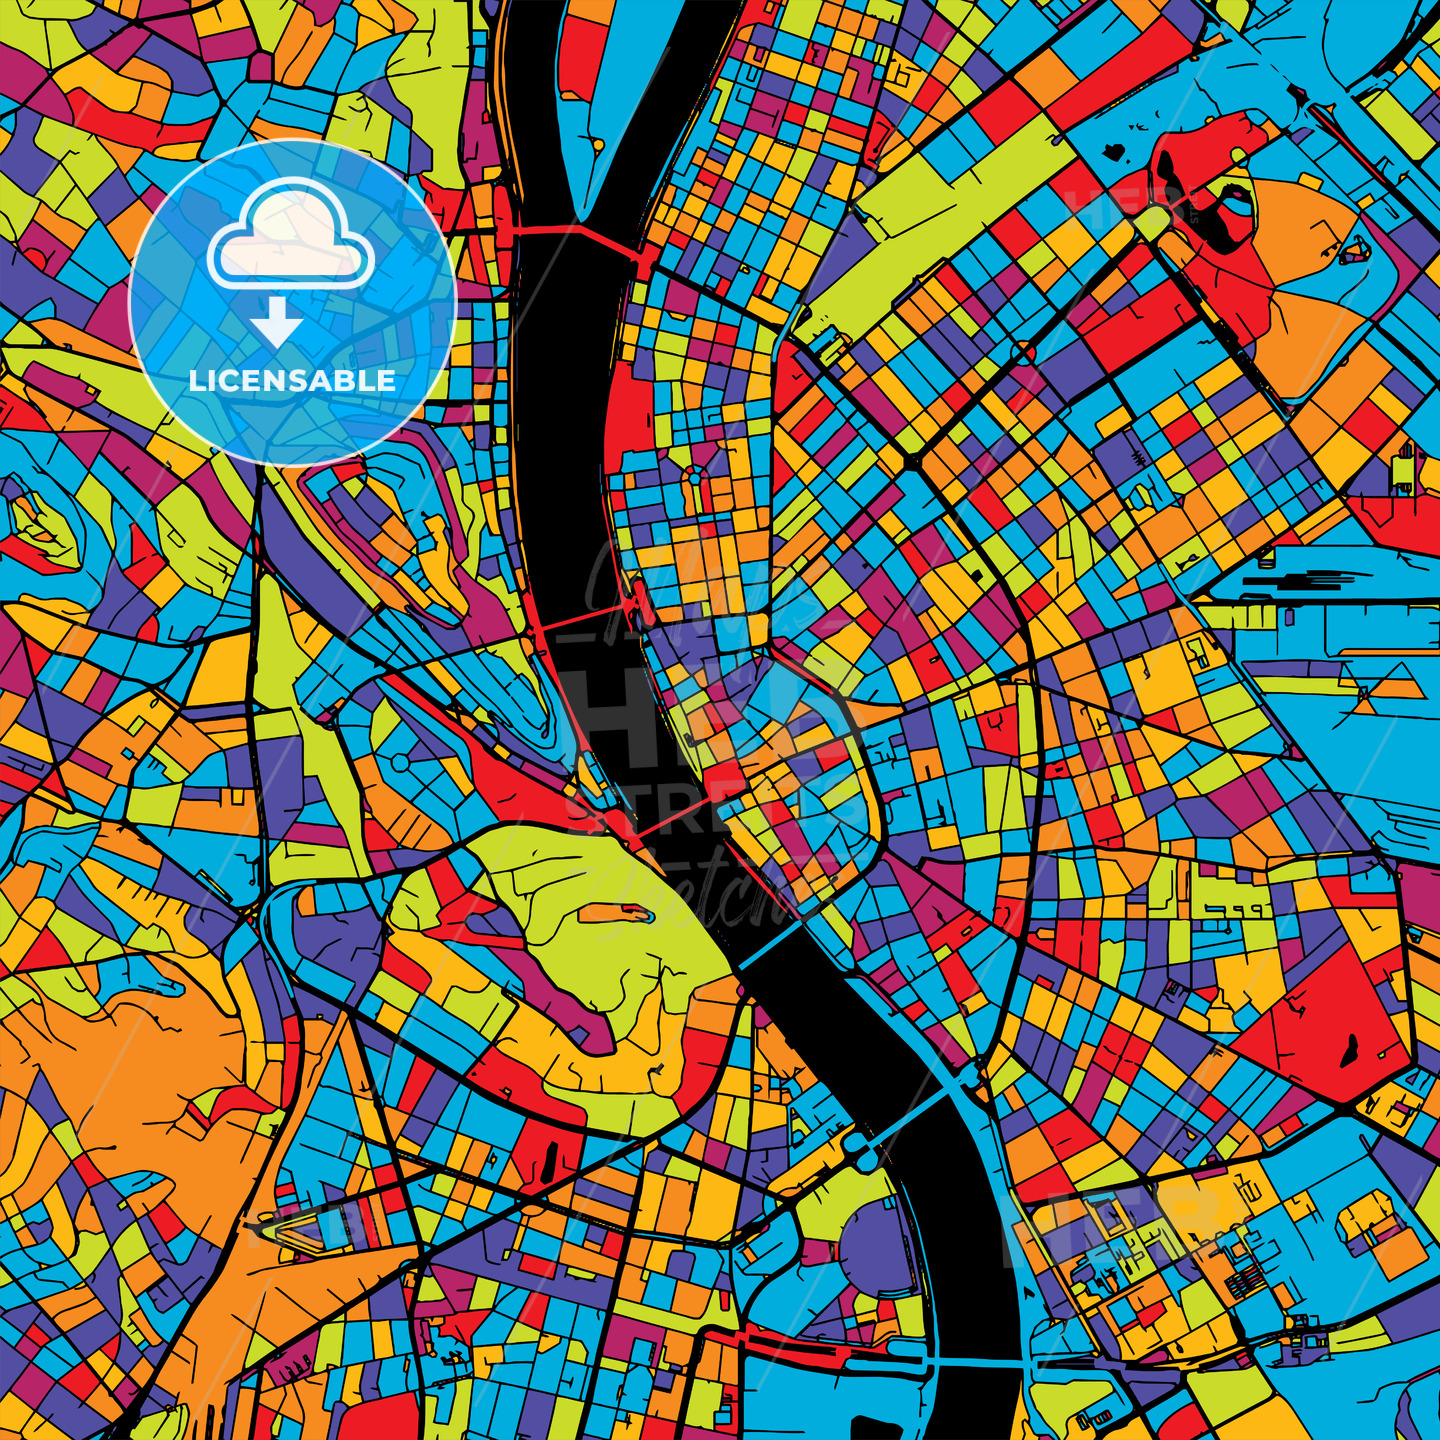 Budapest Colorful Vector Map on Black - HEBSTREIT's Sketches